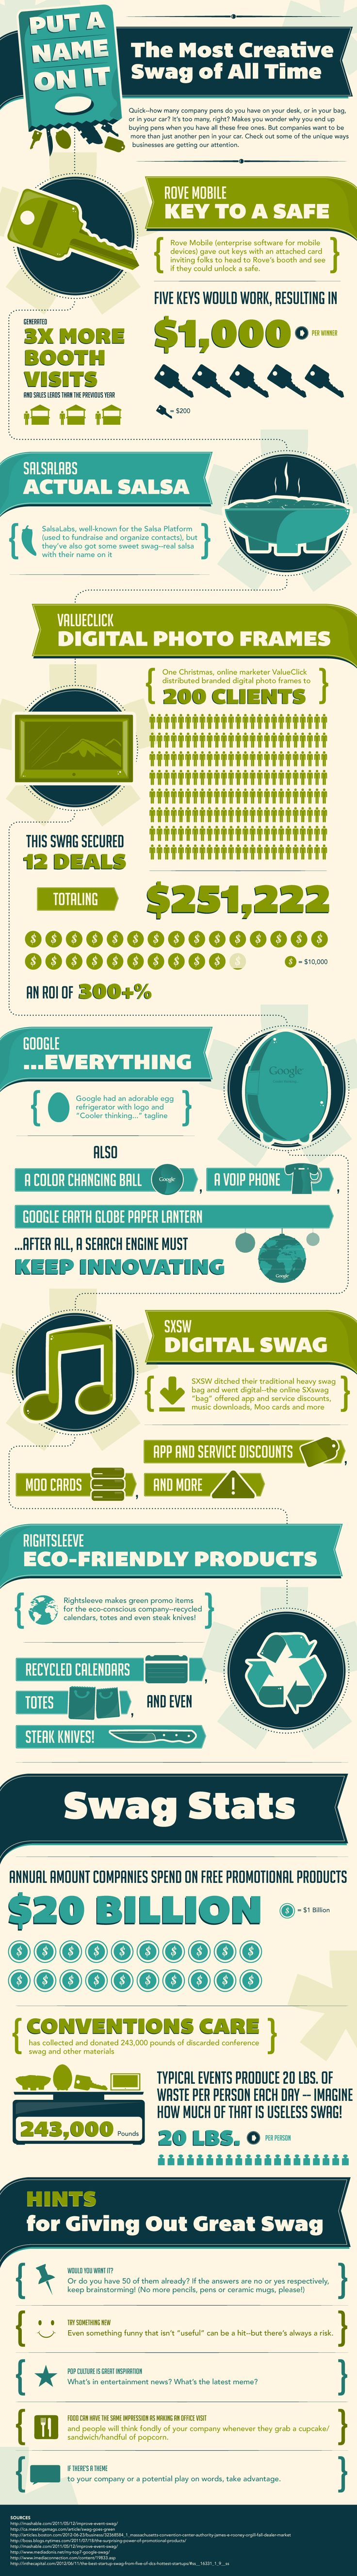 Check out these clever giveaway ideas! [INFOGRAPHIC] | Mines Press, Inc.